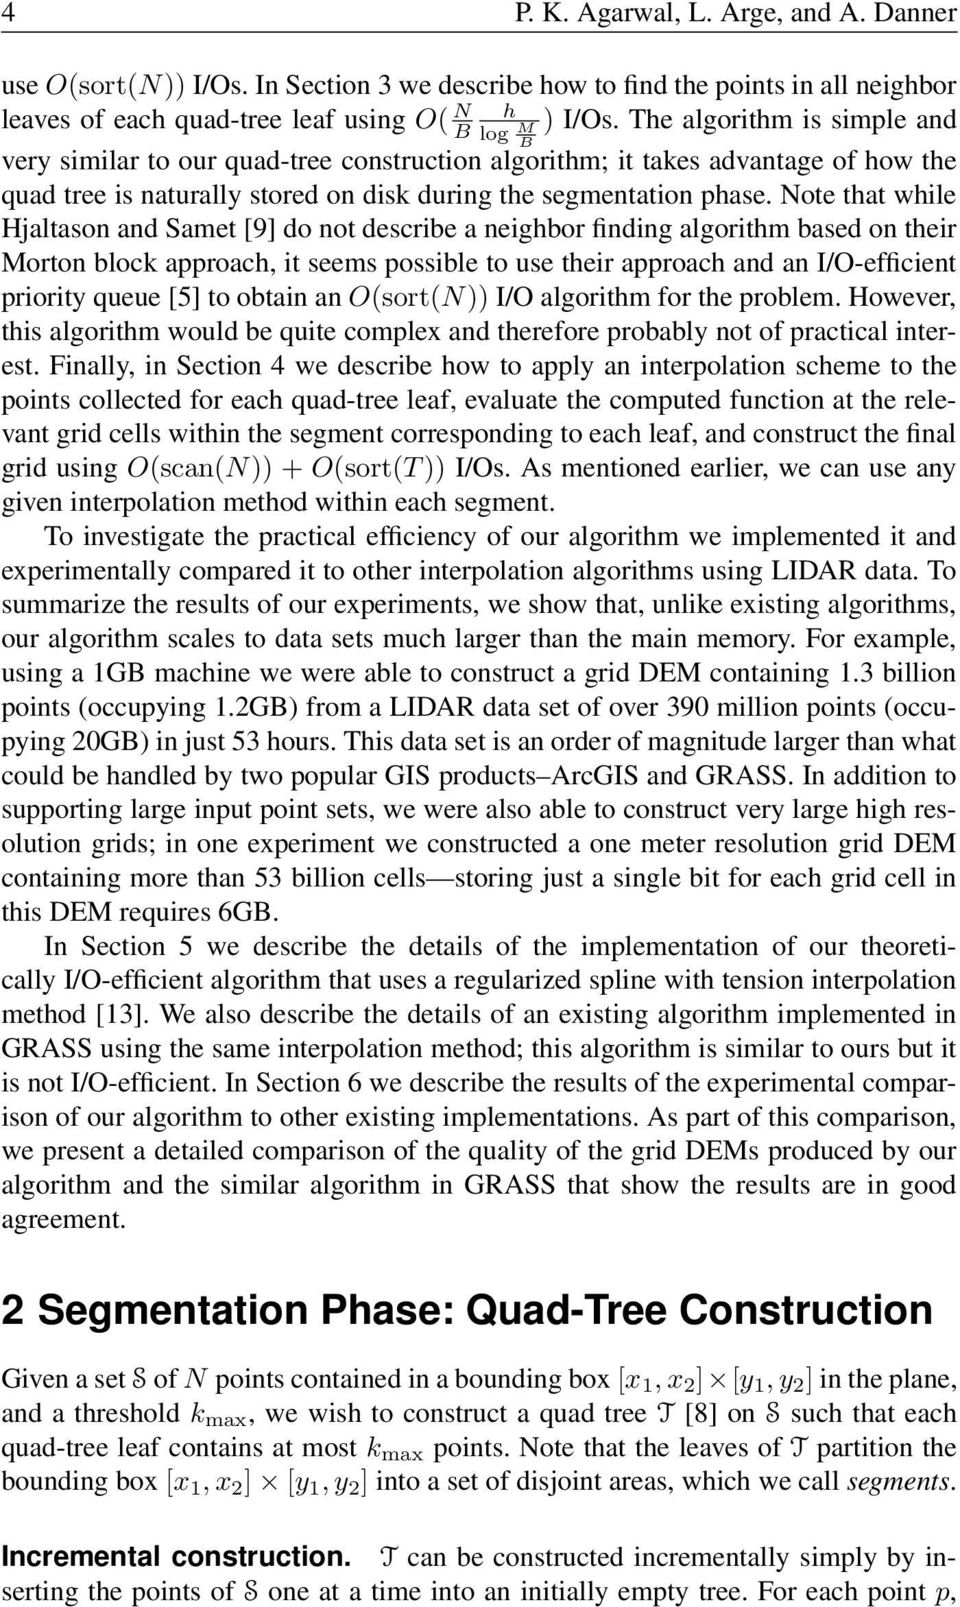 Note that while Hjaltason and Samet [9] do not describe a neighbor finding algorithm based on their Morton block approach, it seems possible to use their approach and an I/O-efficient priority queue